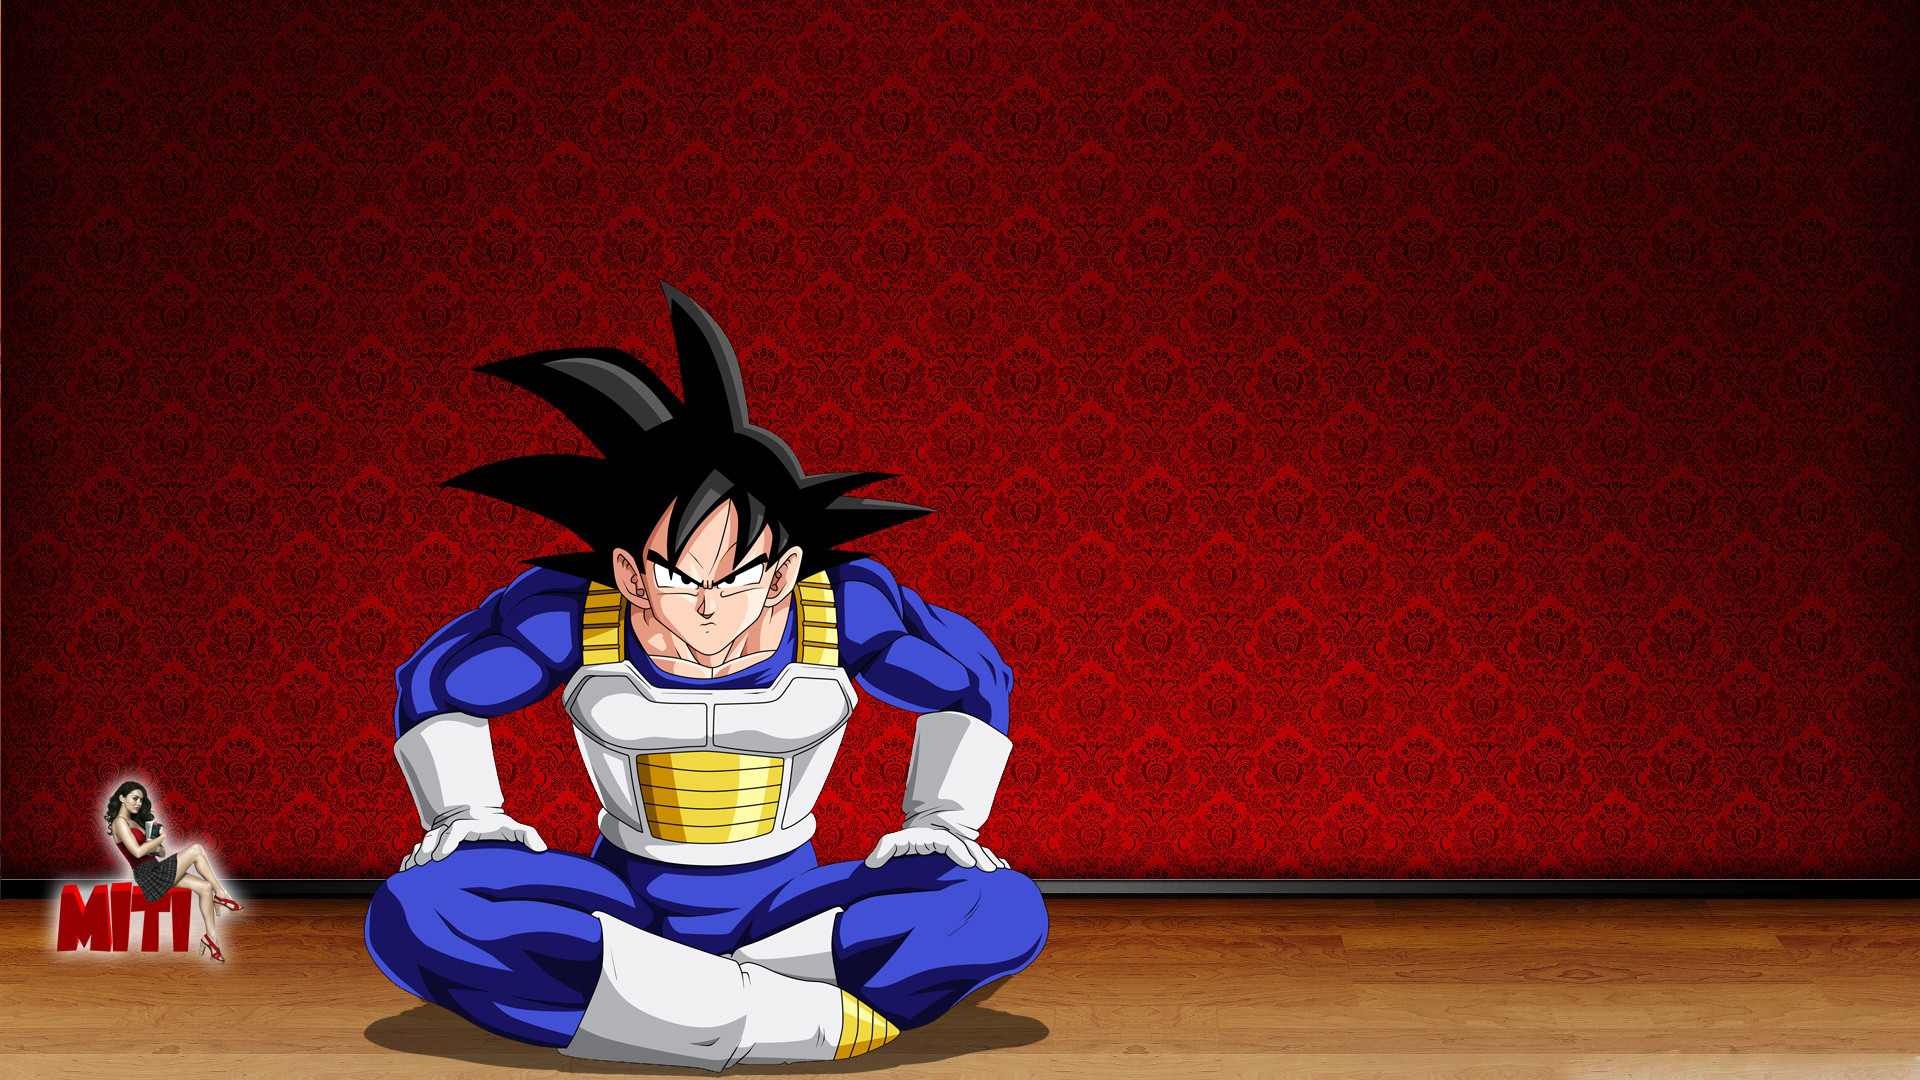 Dbz Wallpapers HD All Saiyans (61+ images)